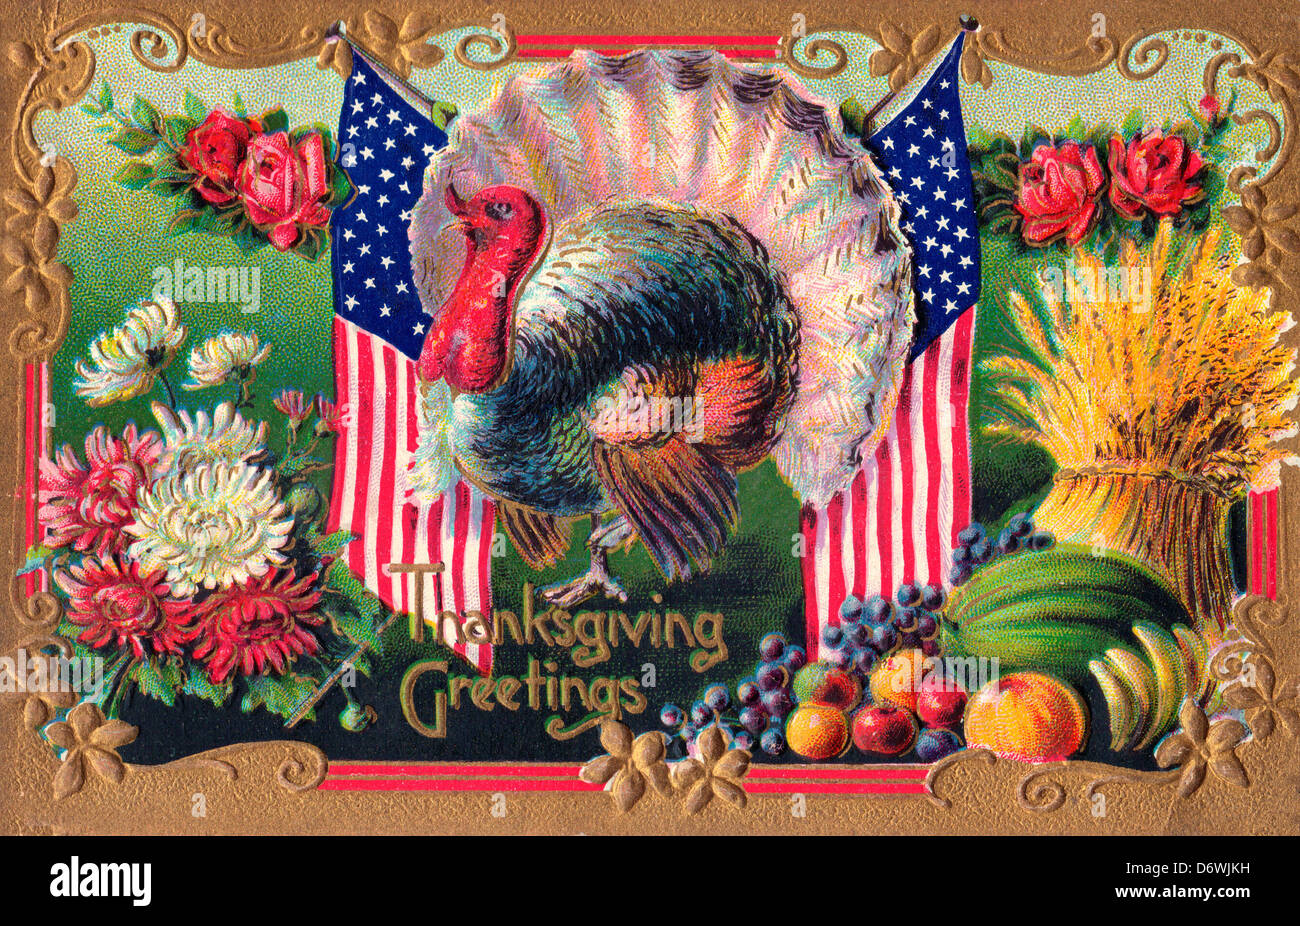 Thanksgiving Greetings - Turkey with American Flag, flowers fruits and hay - Stock Image